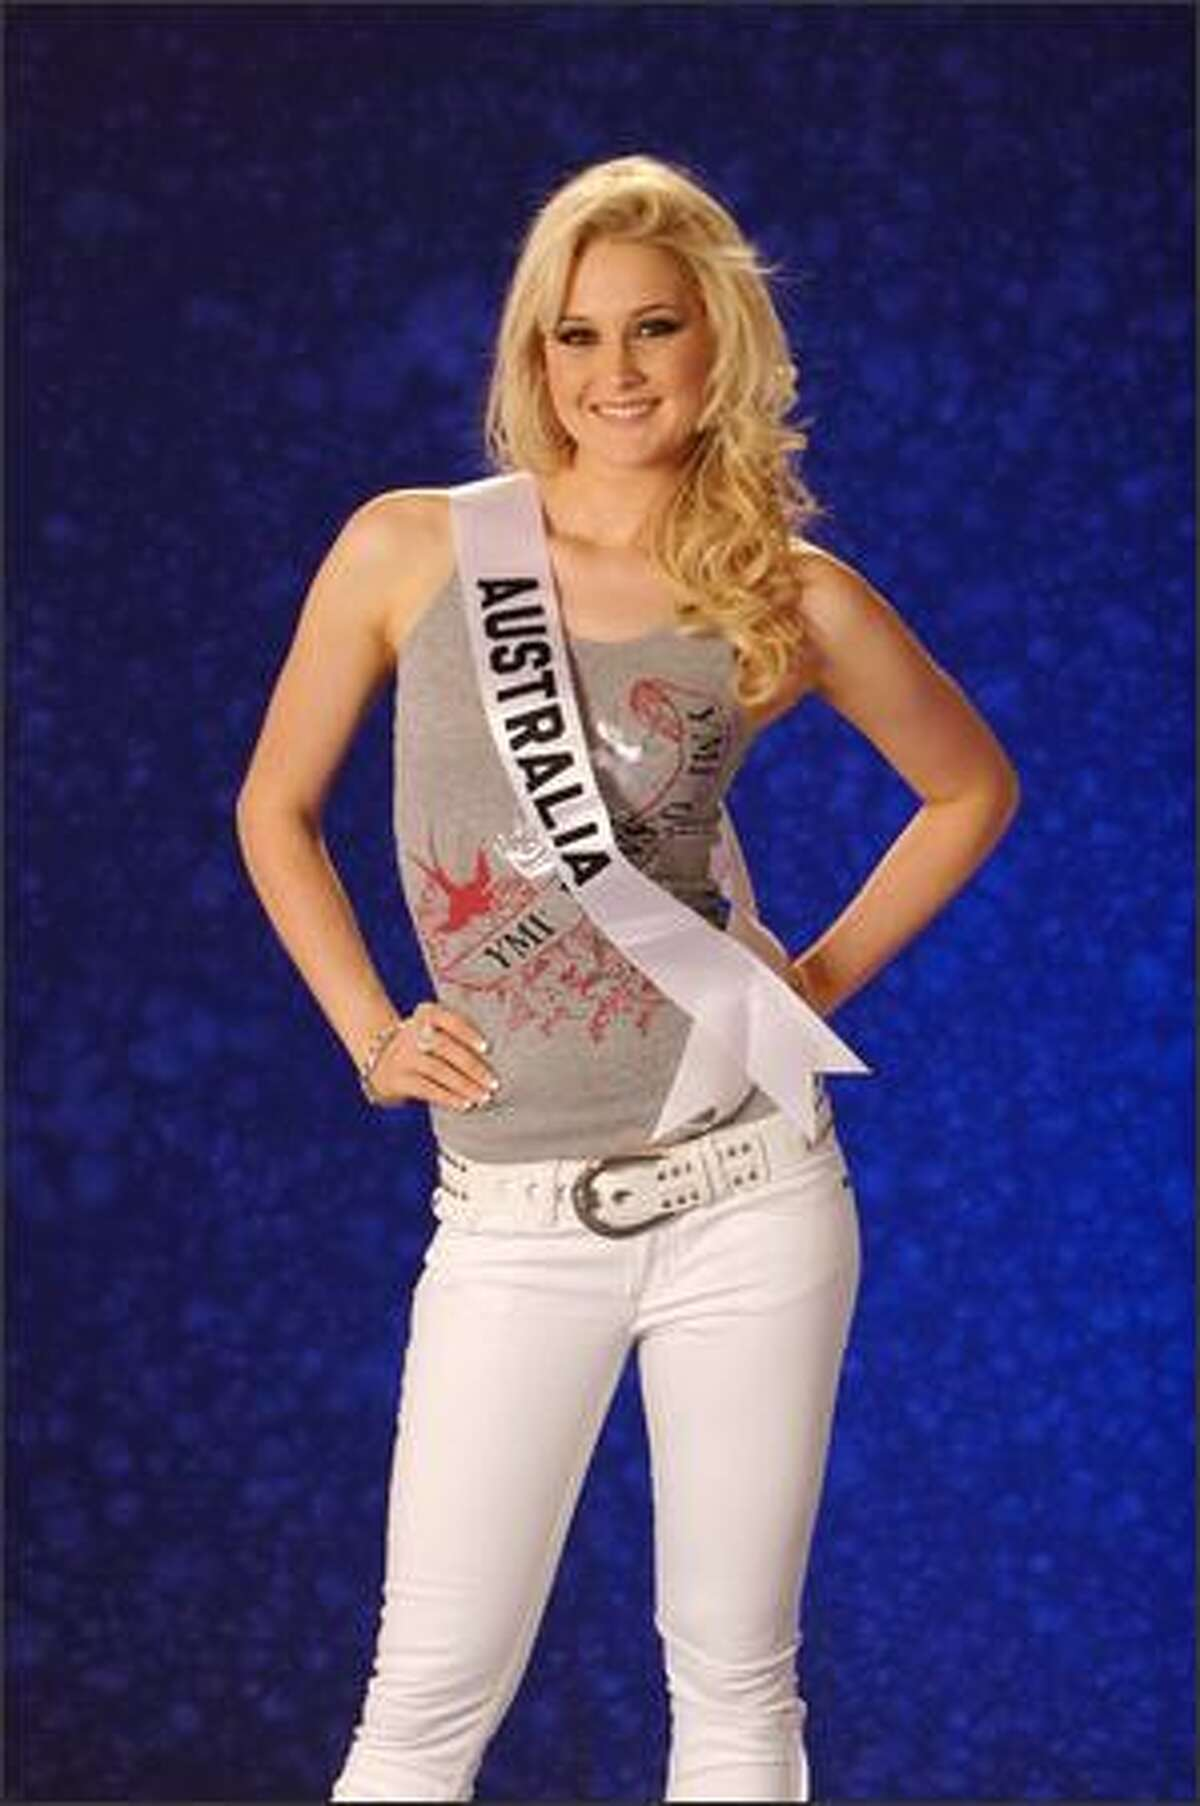 Kimberley Busteed, Miss Australia 2007.